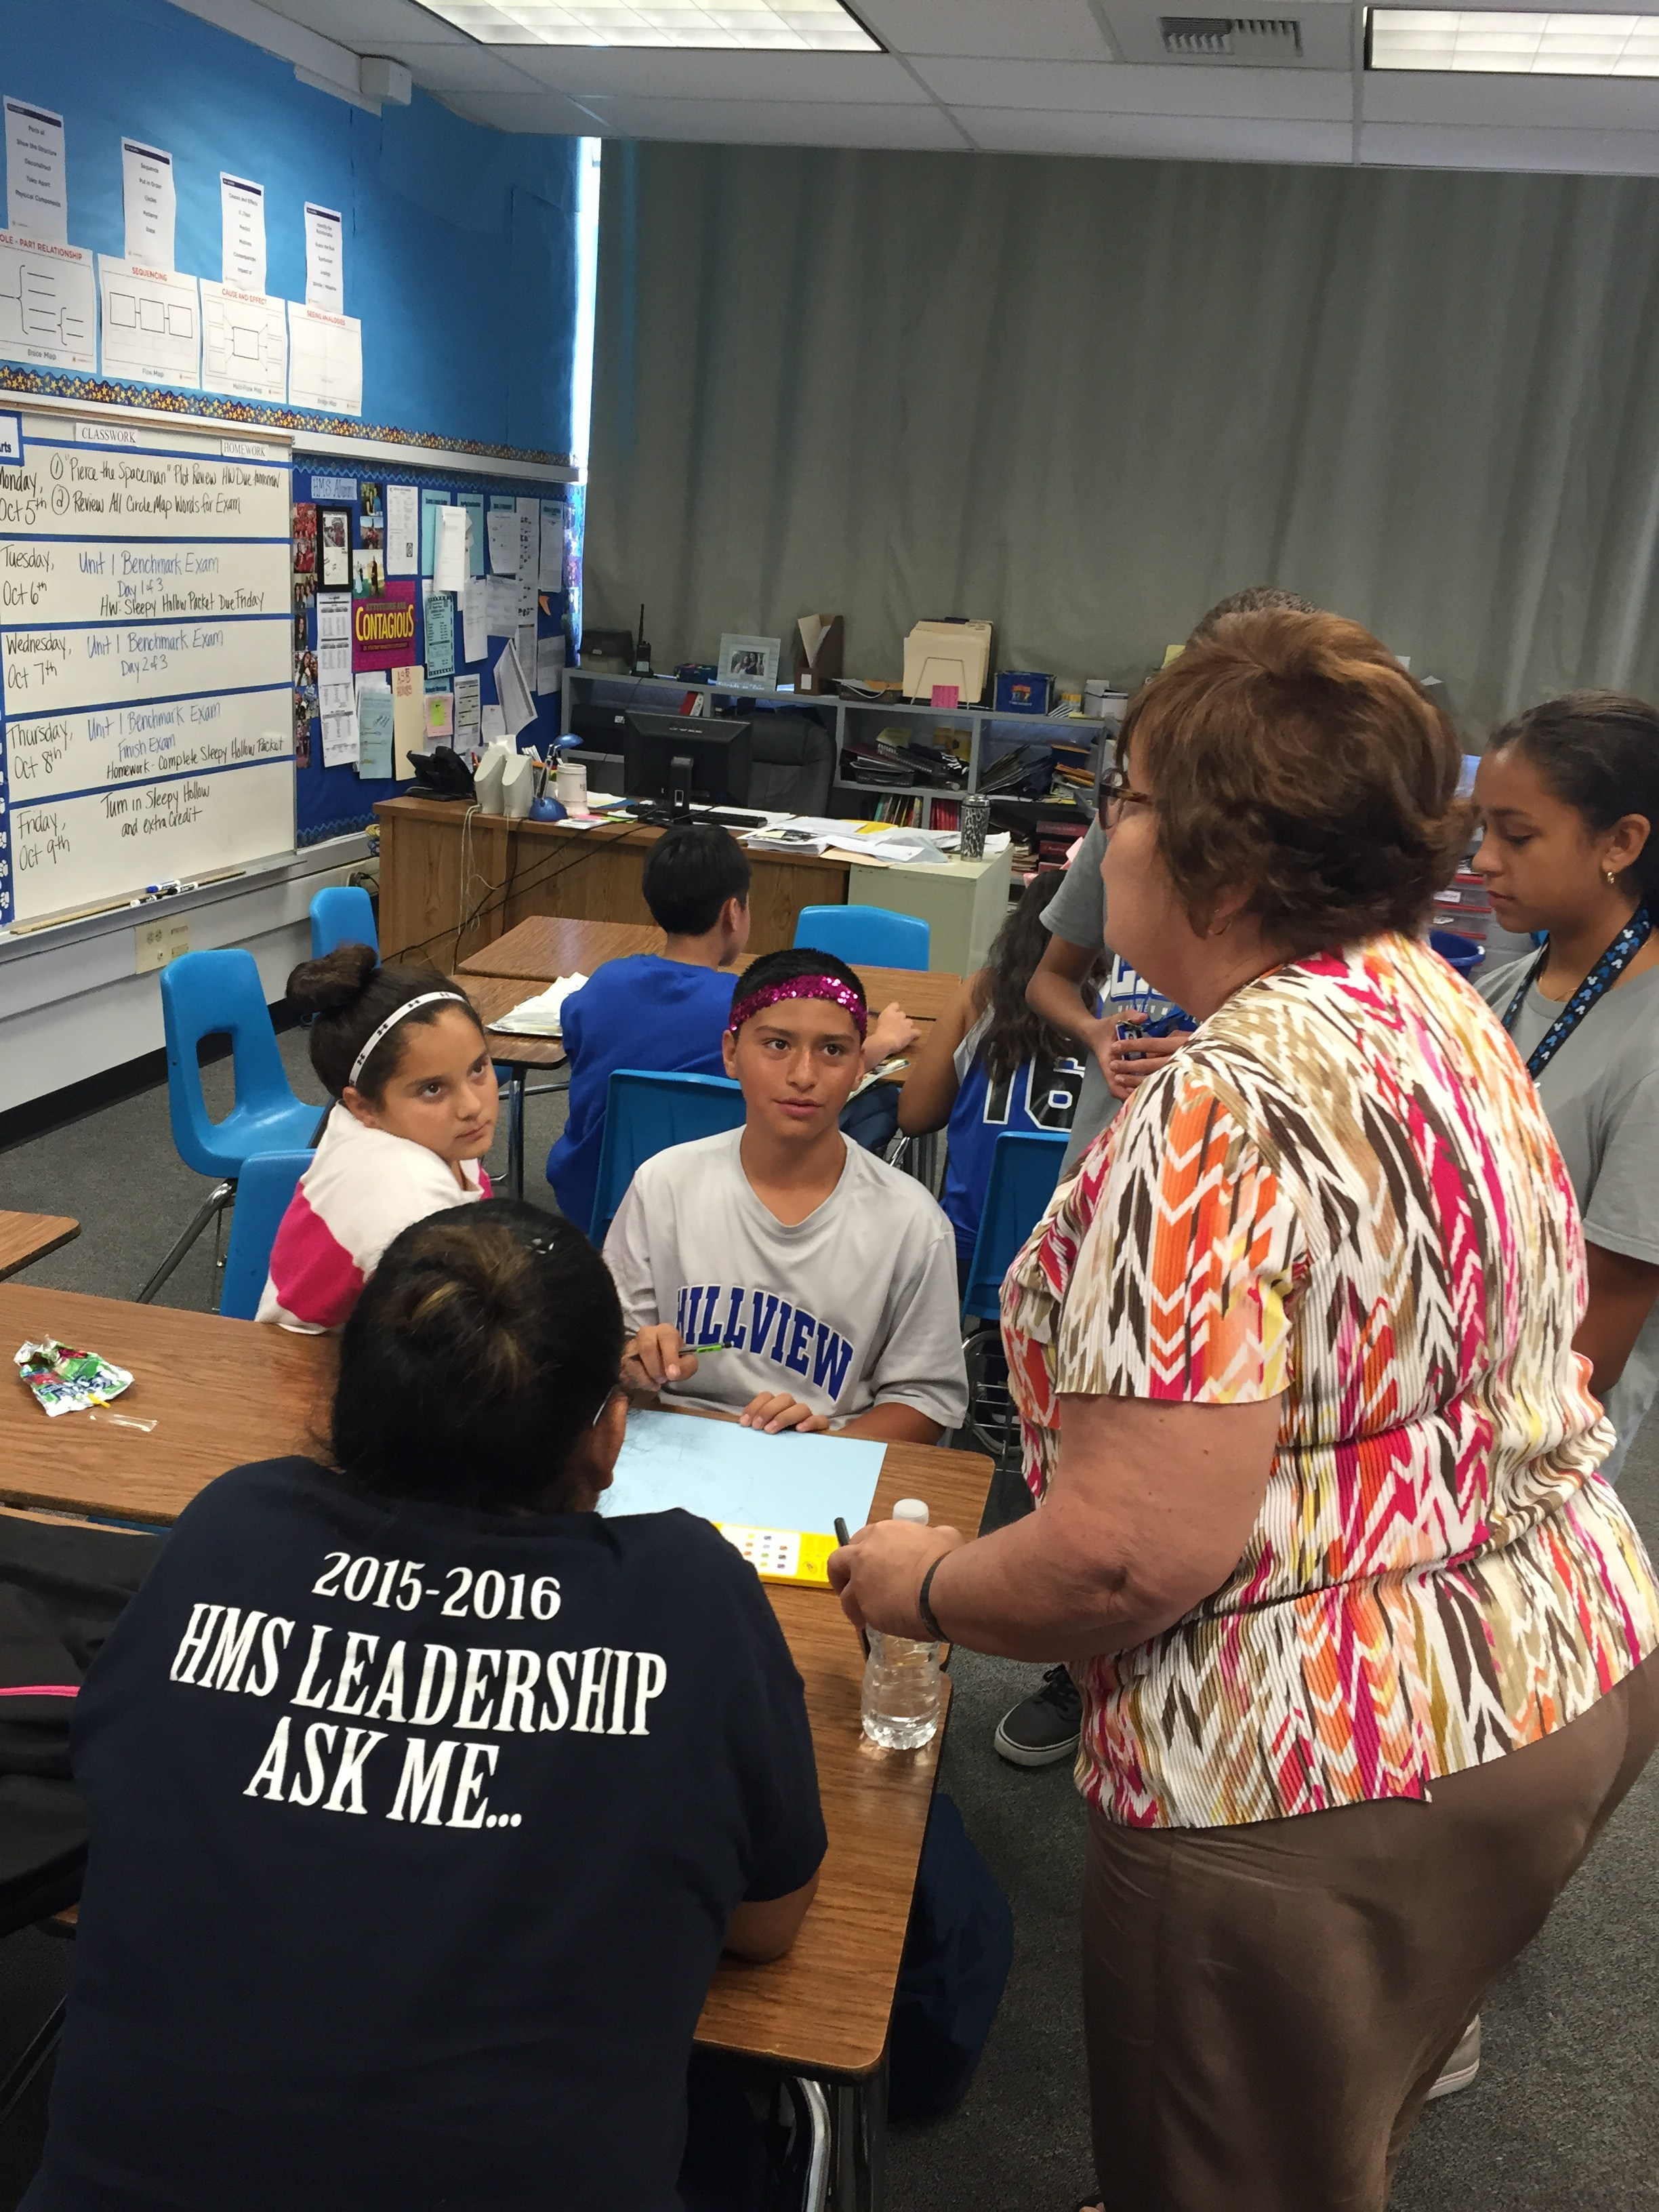 Superintendent, Mary Branca, talking with a group of students